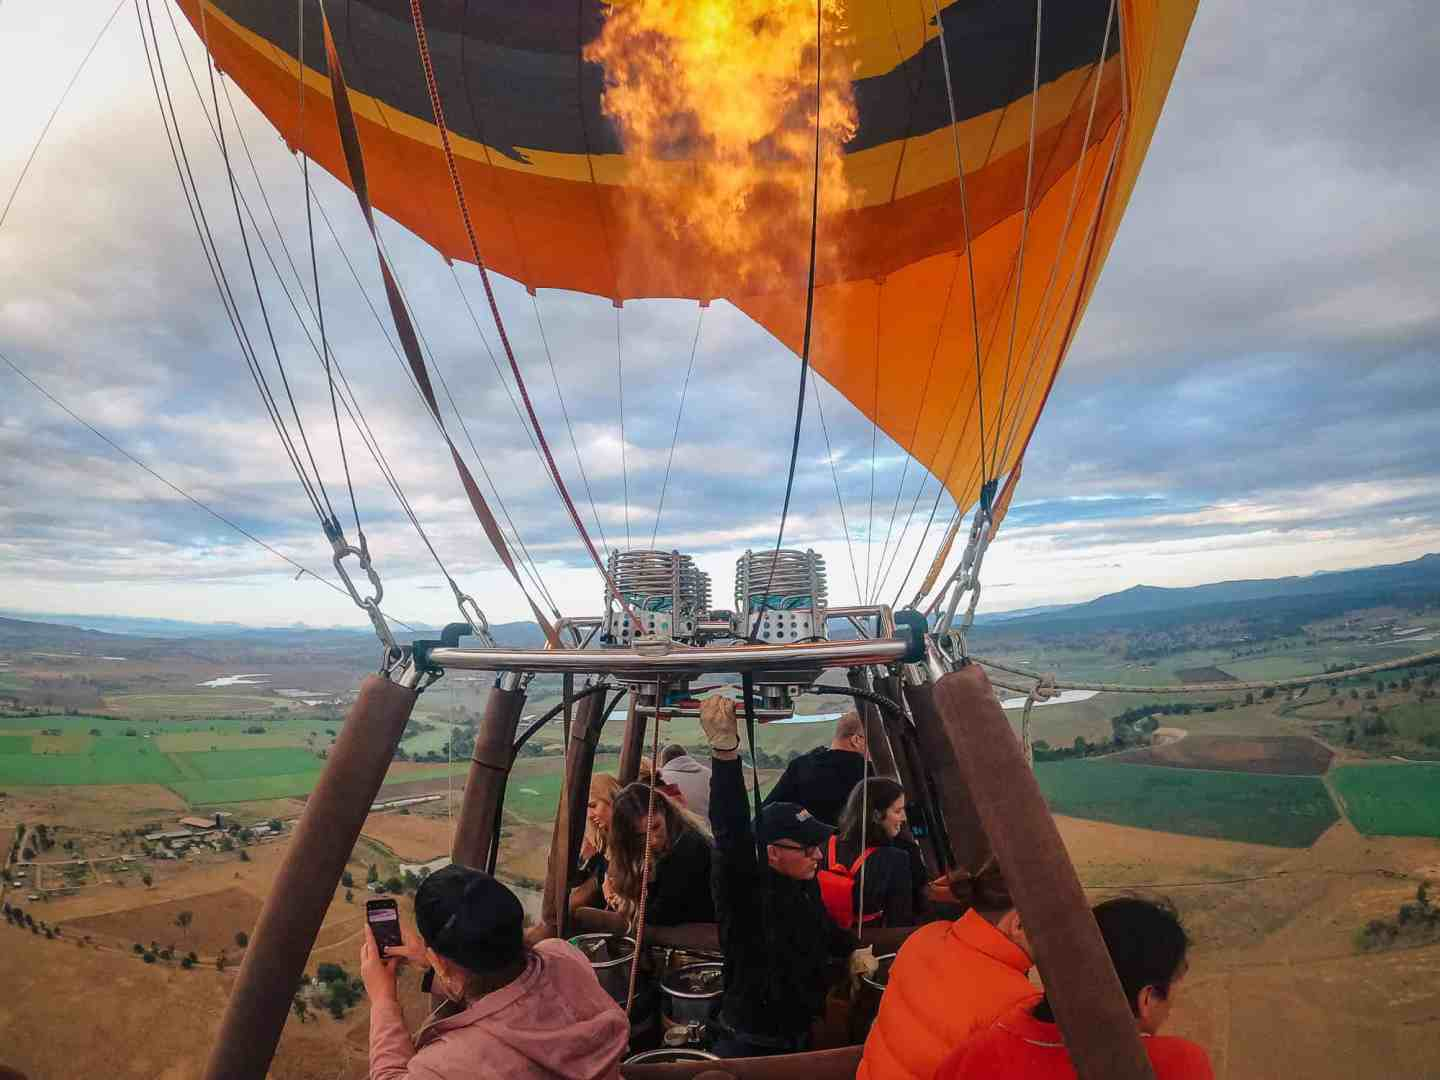 hot air balloon gold coast, hot air balloon rides gold coast, hot air gold coast, balloon gold coast, gold coast hot air balloon, gold coast hot air balloon ride, hot air balloon in gold coast